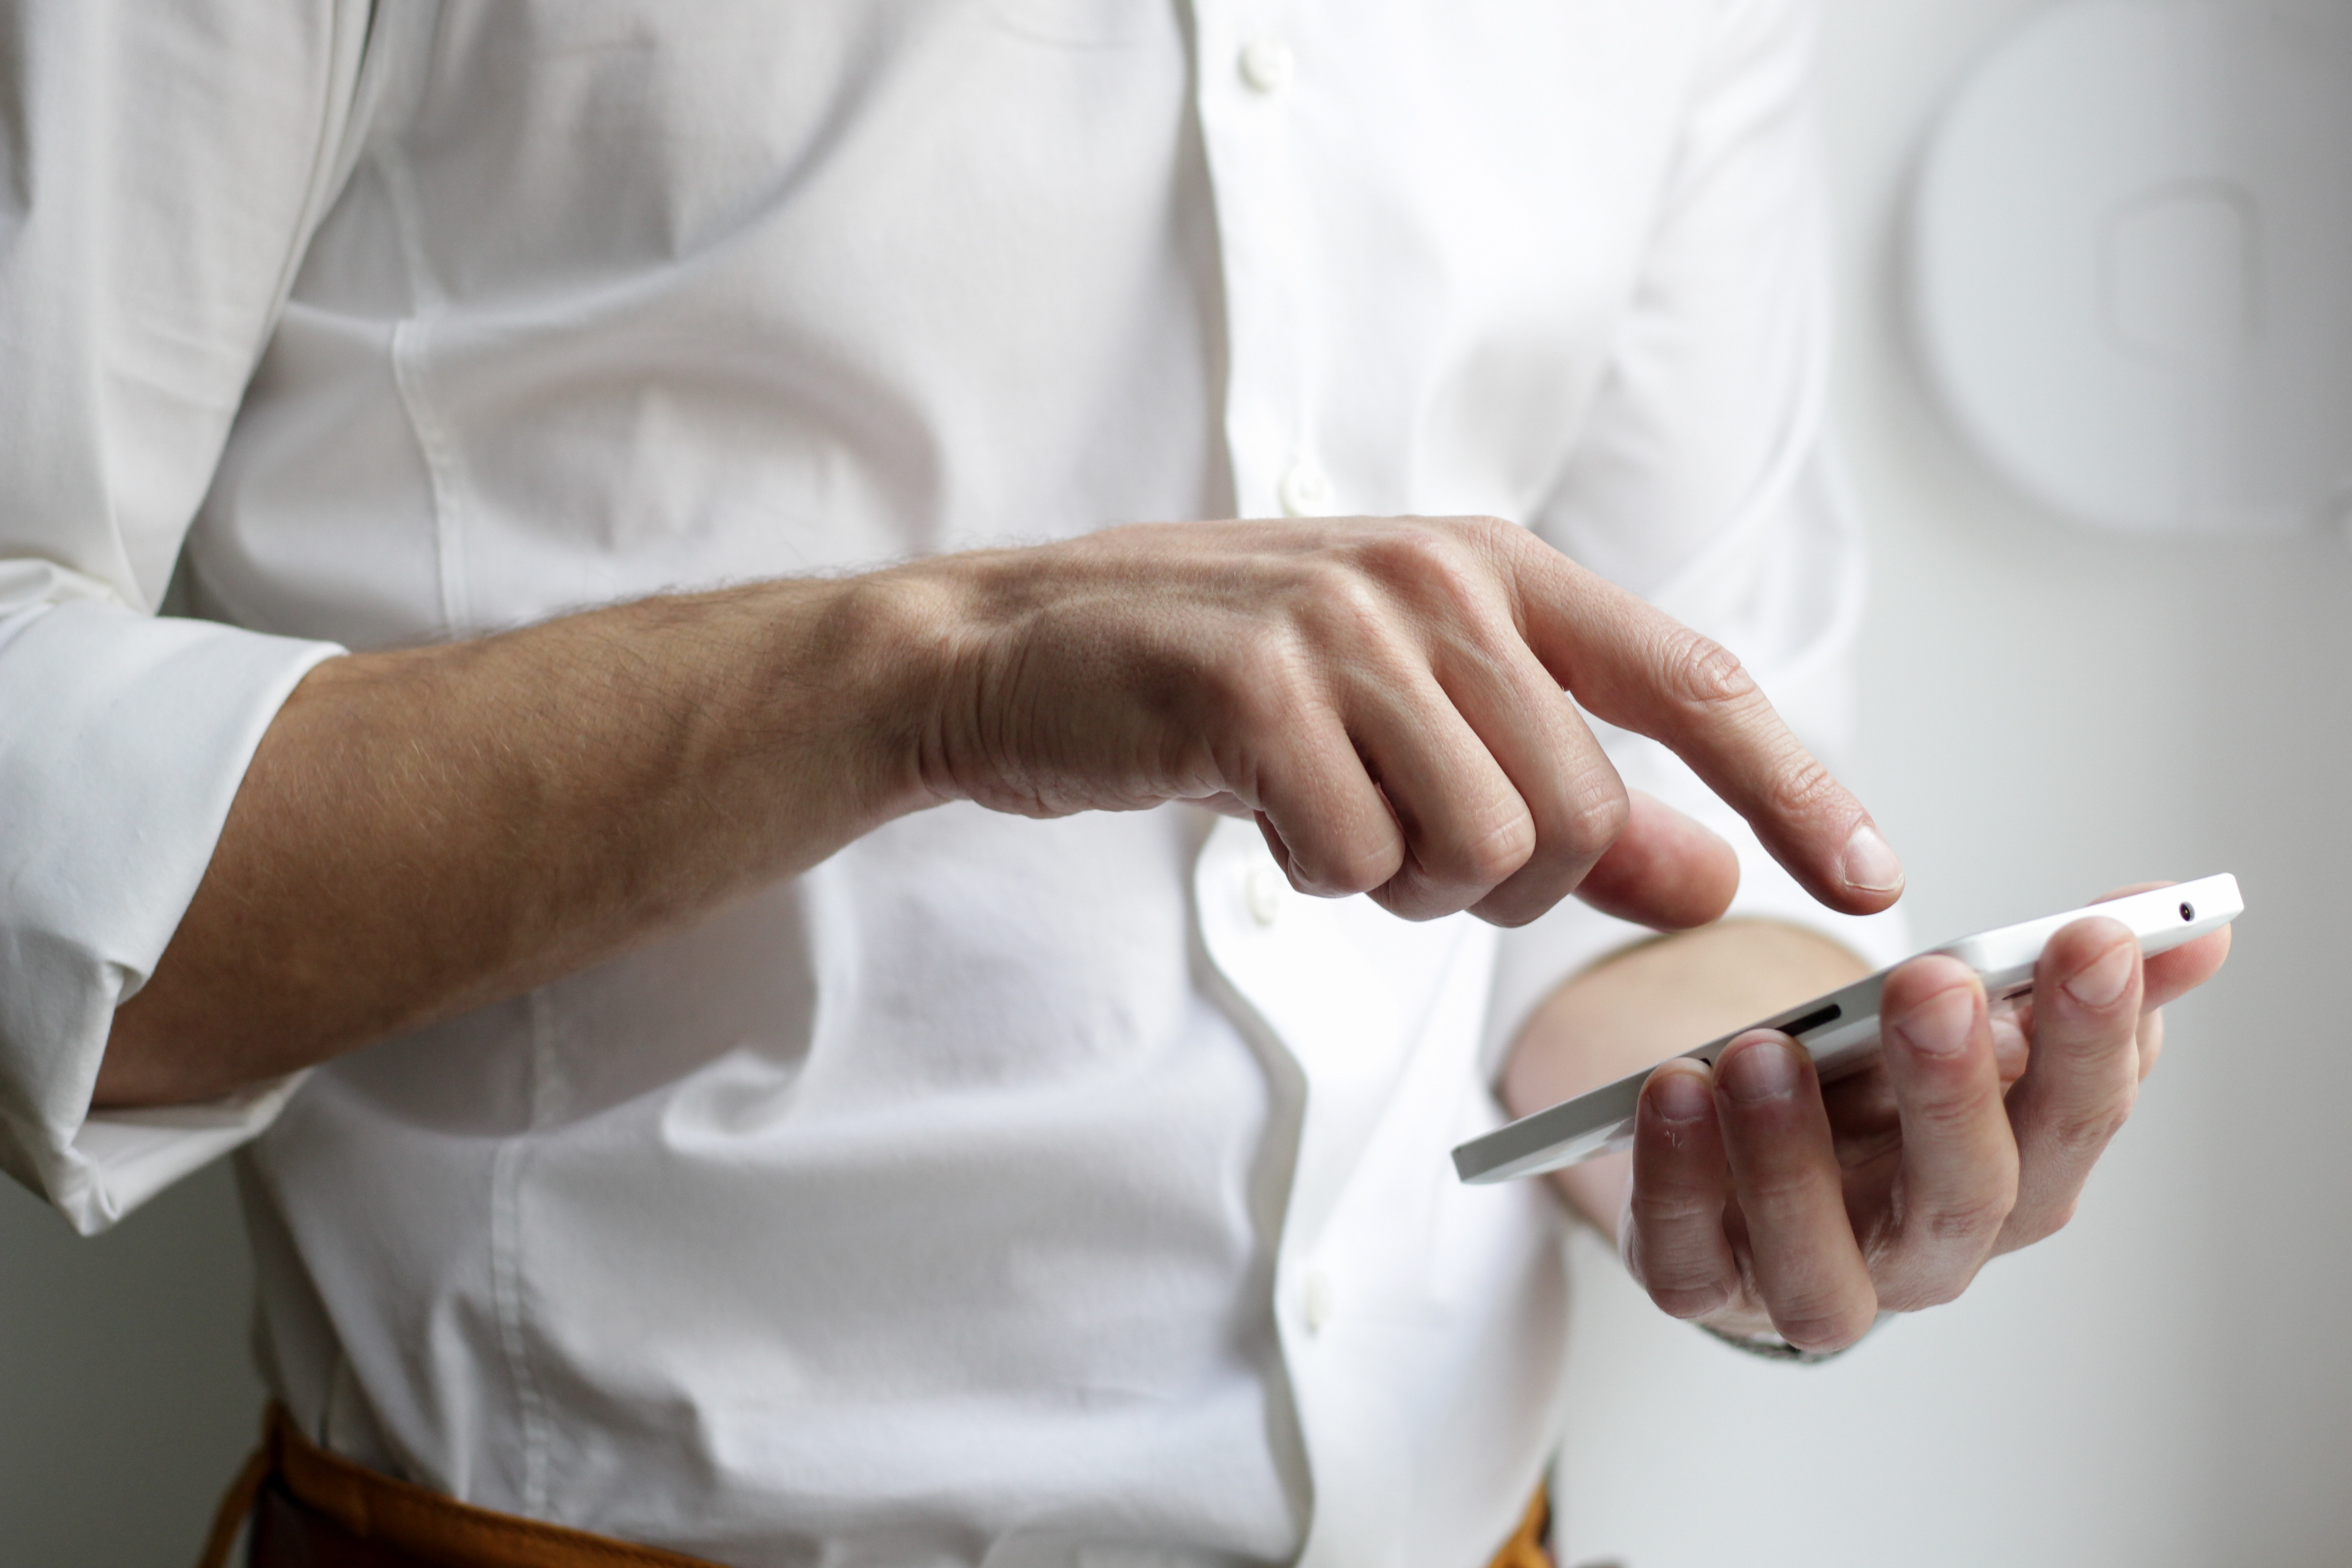 Learn more ab out your patients with mobile Checkin at events